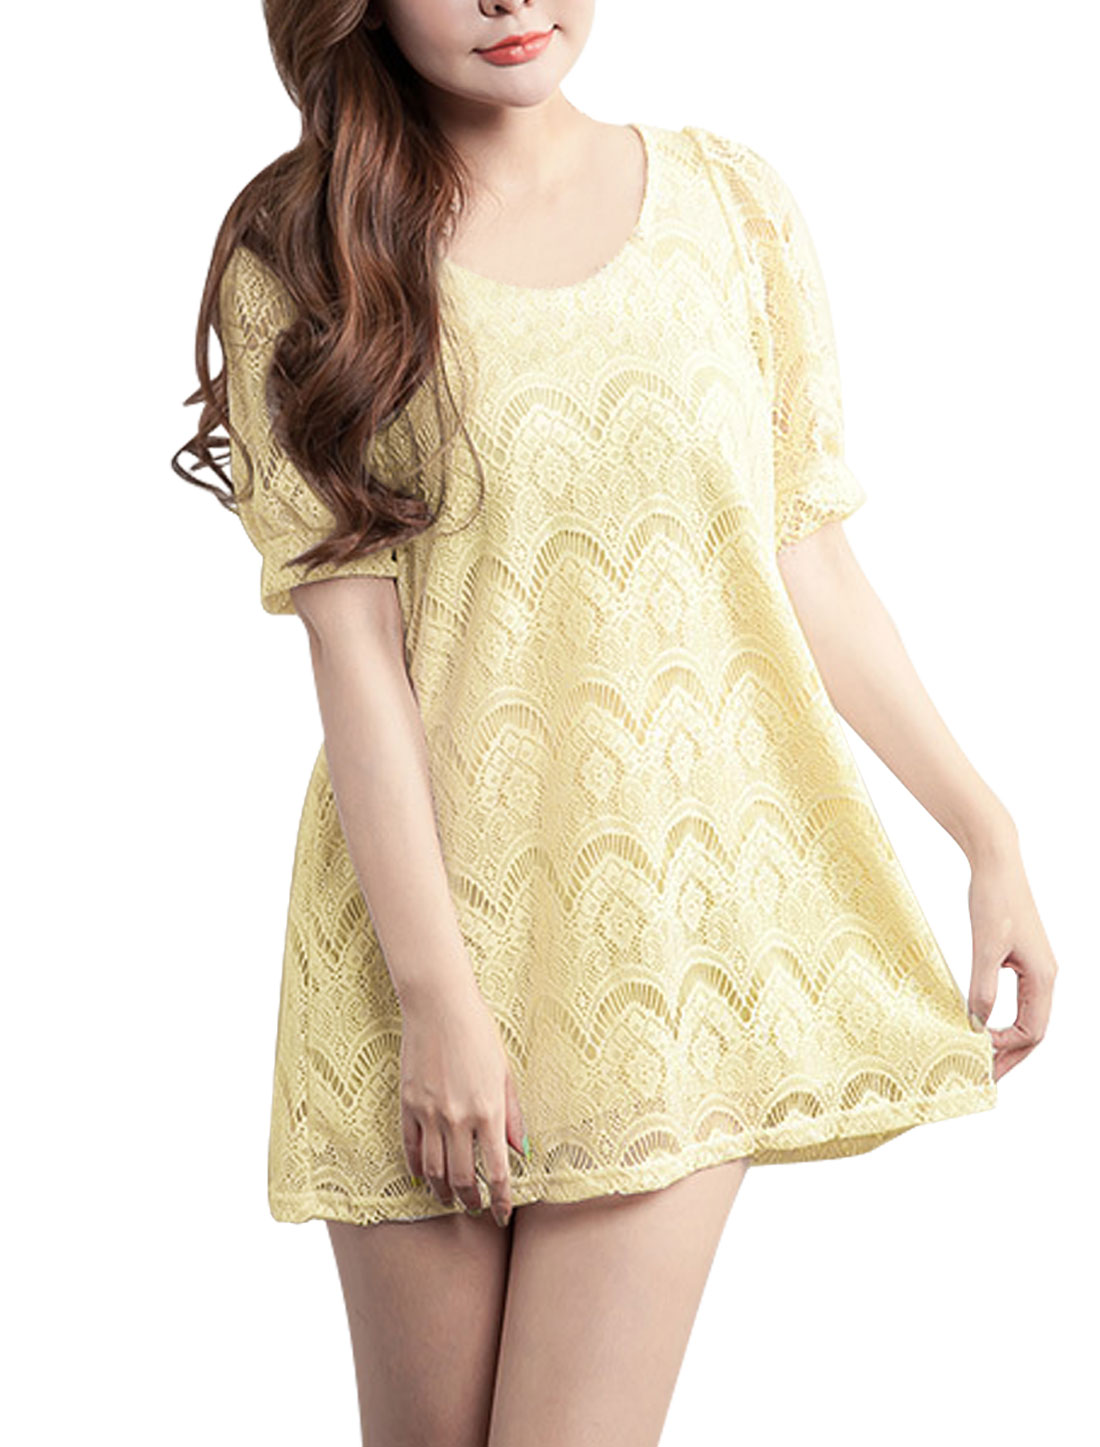 Ladies Pullover Hollow Out Detail Sweet Lace Top Light Yellow XS